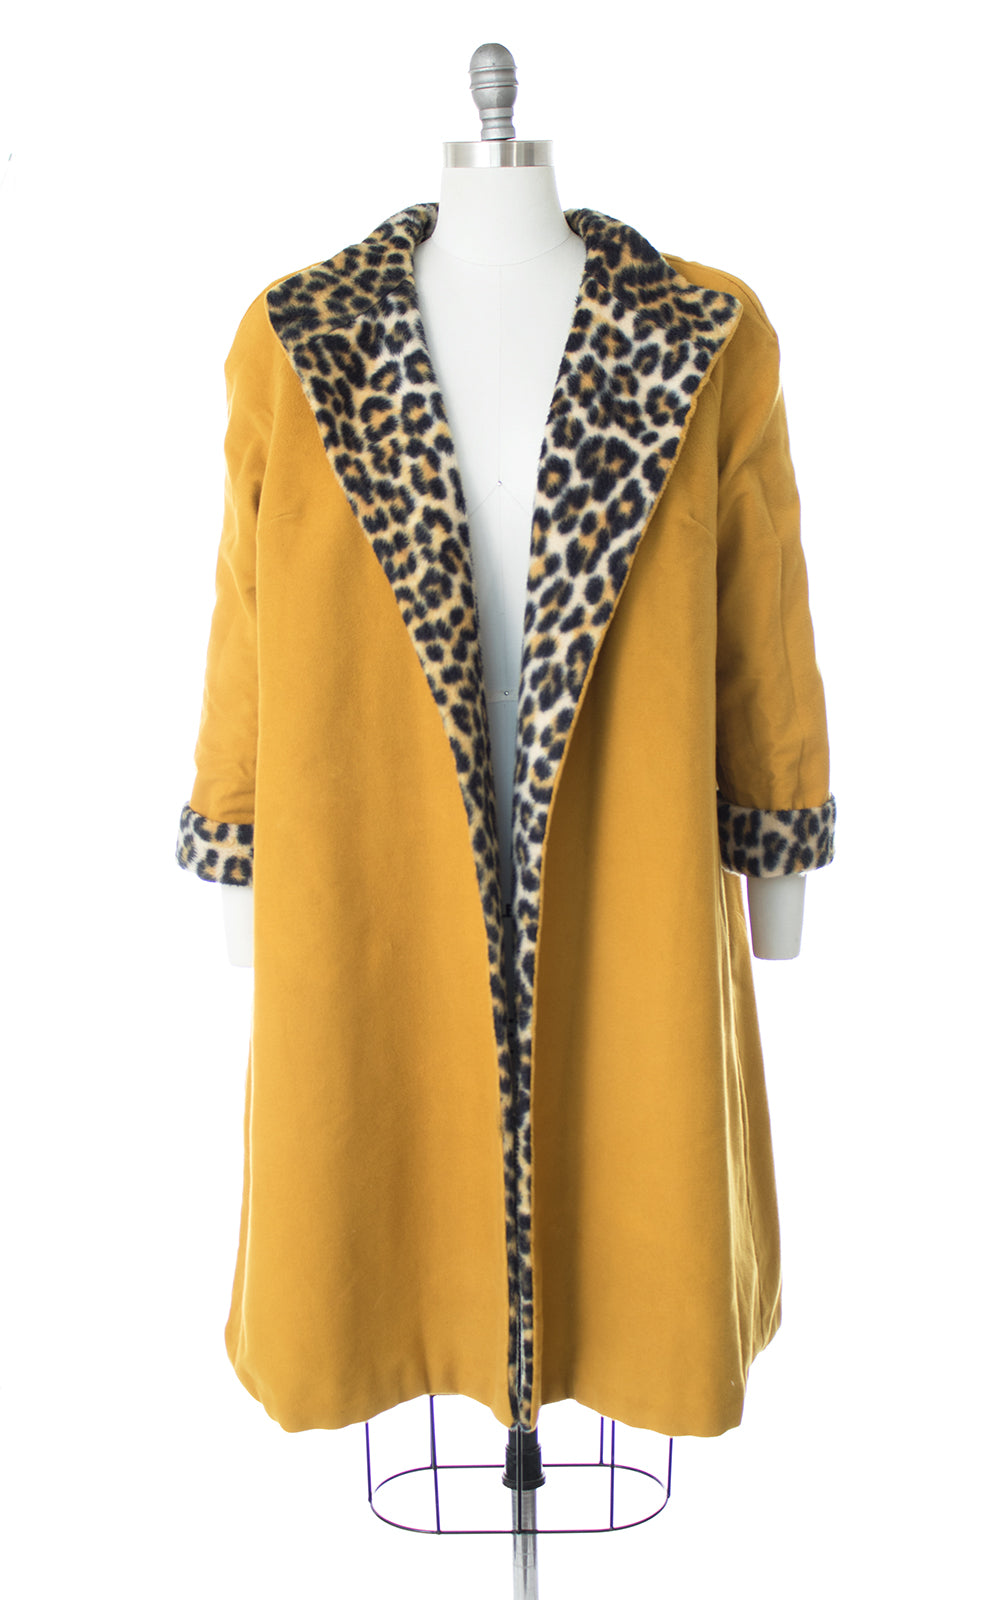 1960s Reversible Leopard Print Mustard Yellow Swing Coat